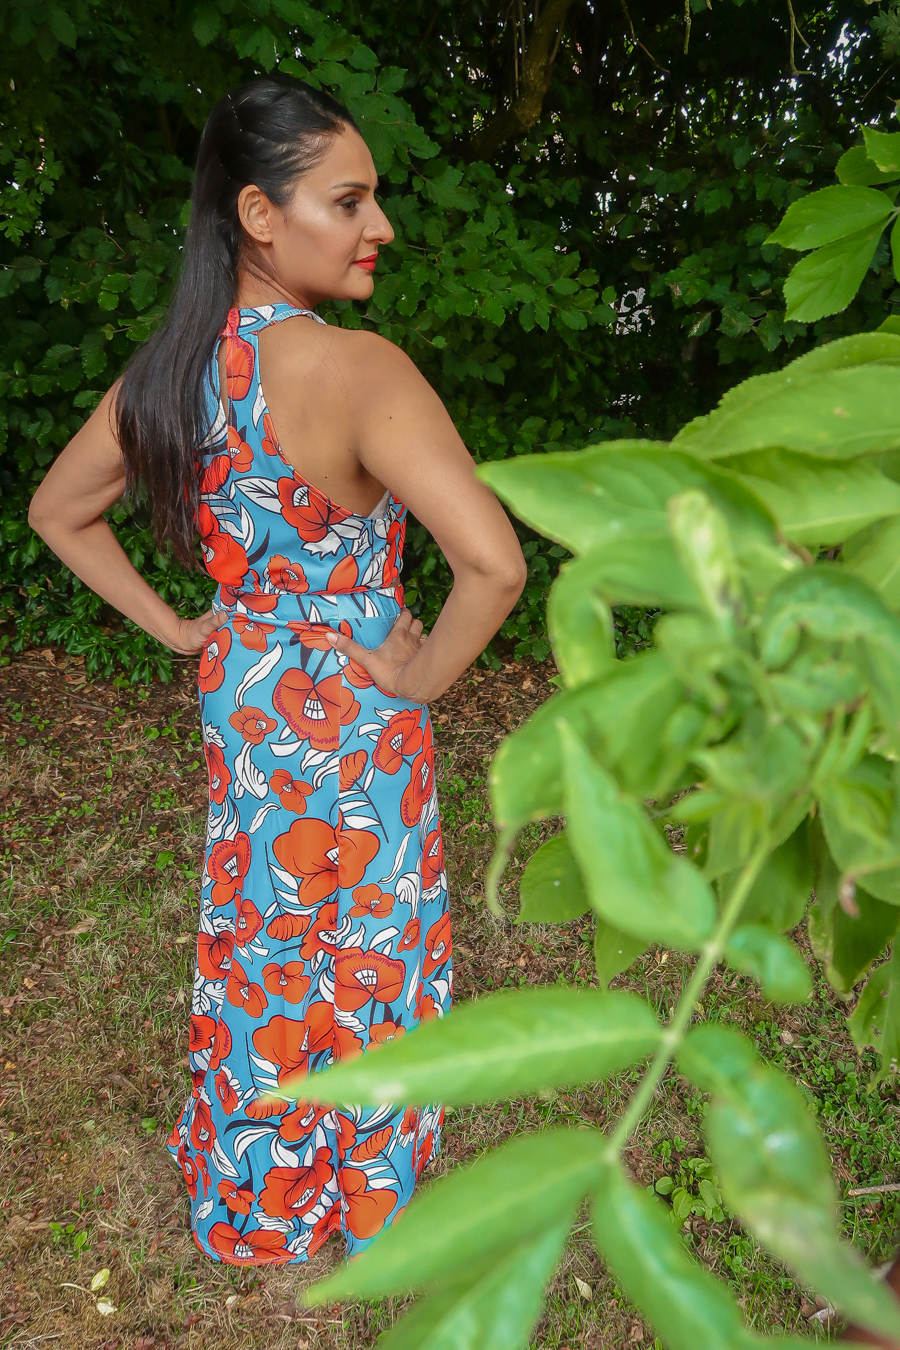 Fashion Review - Floral two-piece skirt set